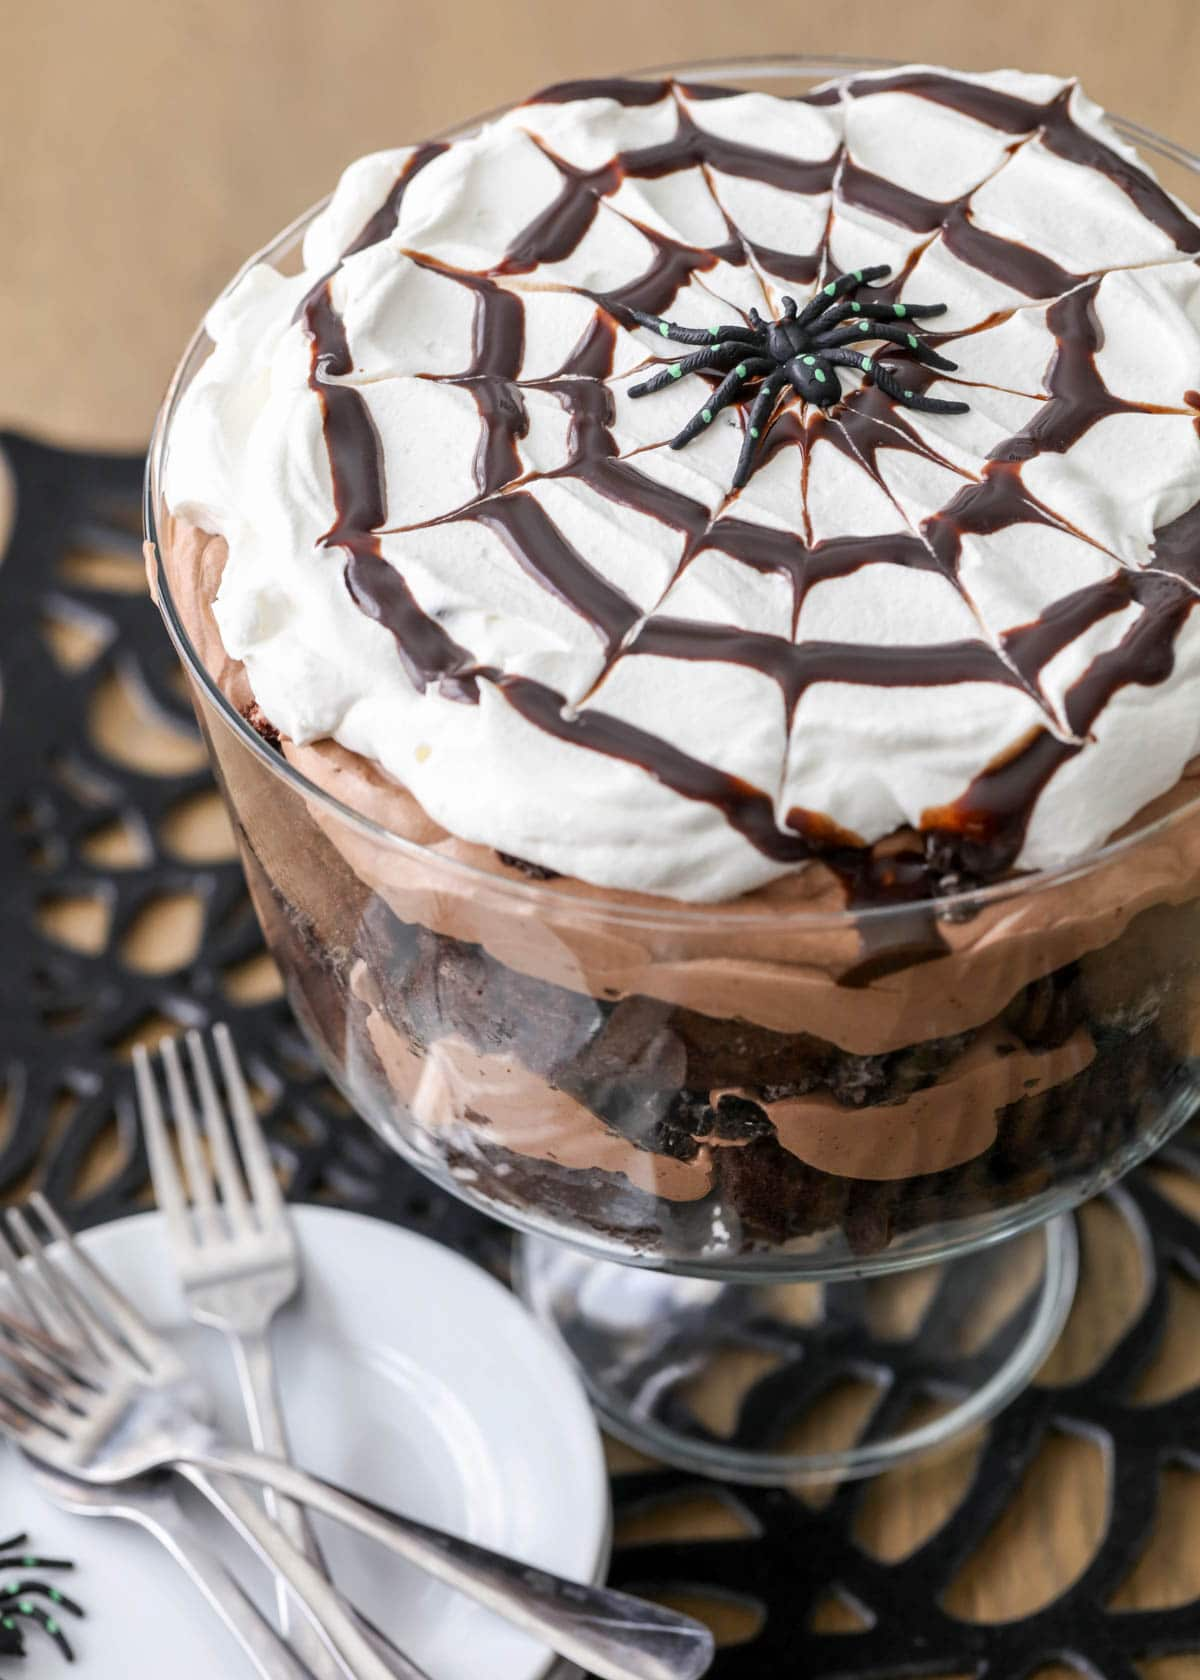 Chocolate spider trifle in a glass dish